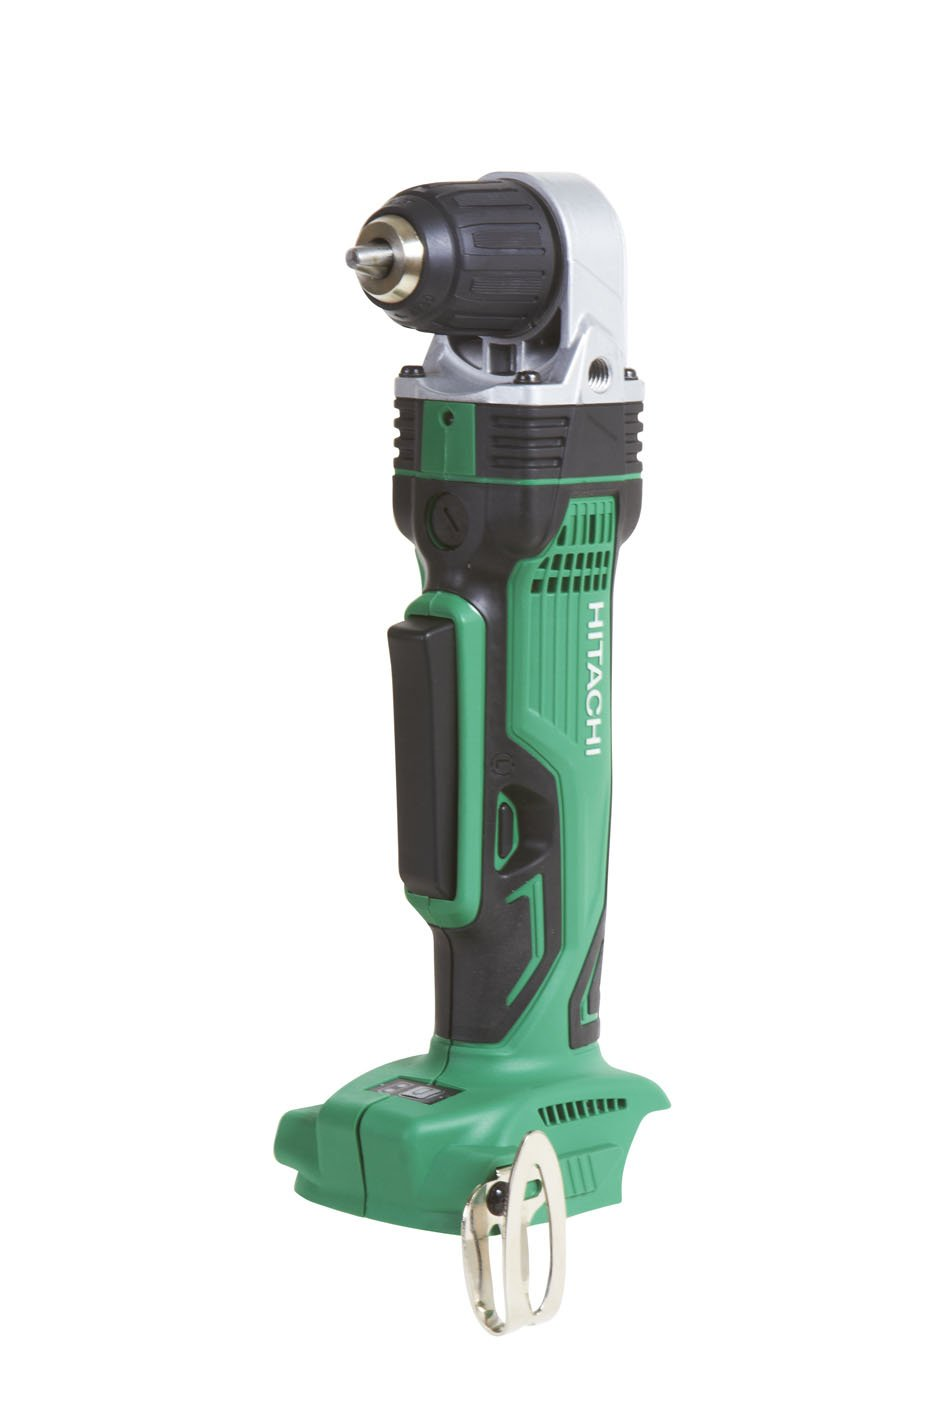 Top 10 Best Right Angle Impact Driver Reviews 2018-2020 - cover